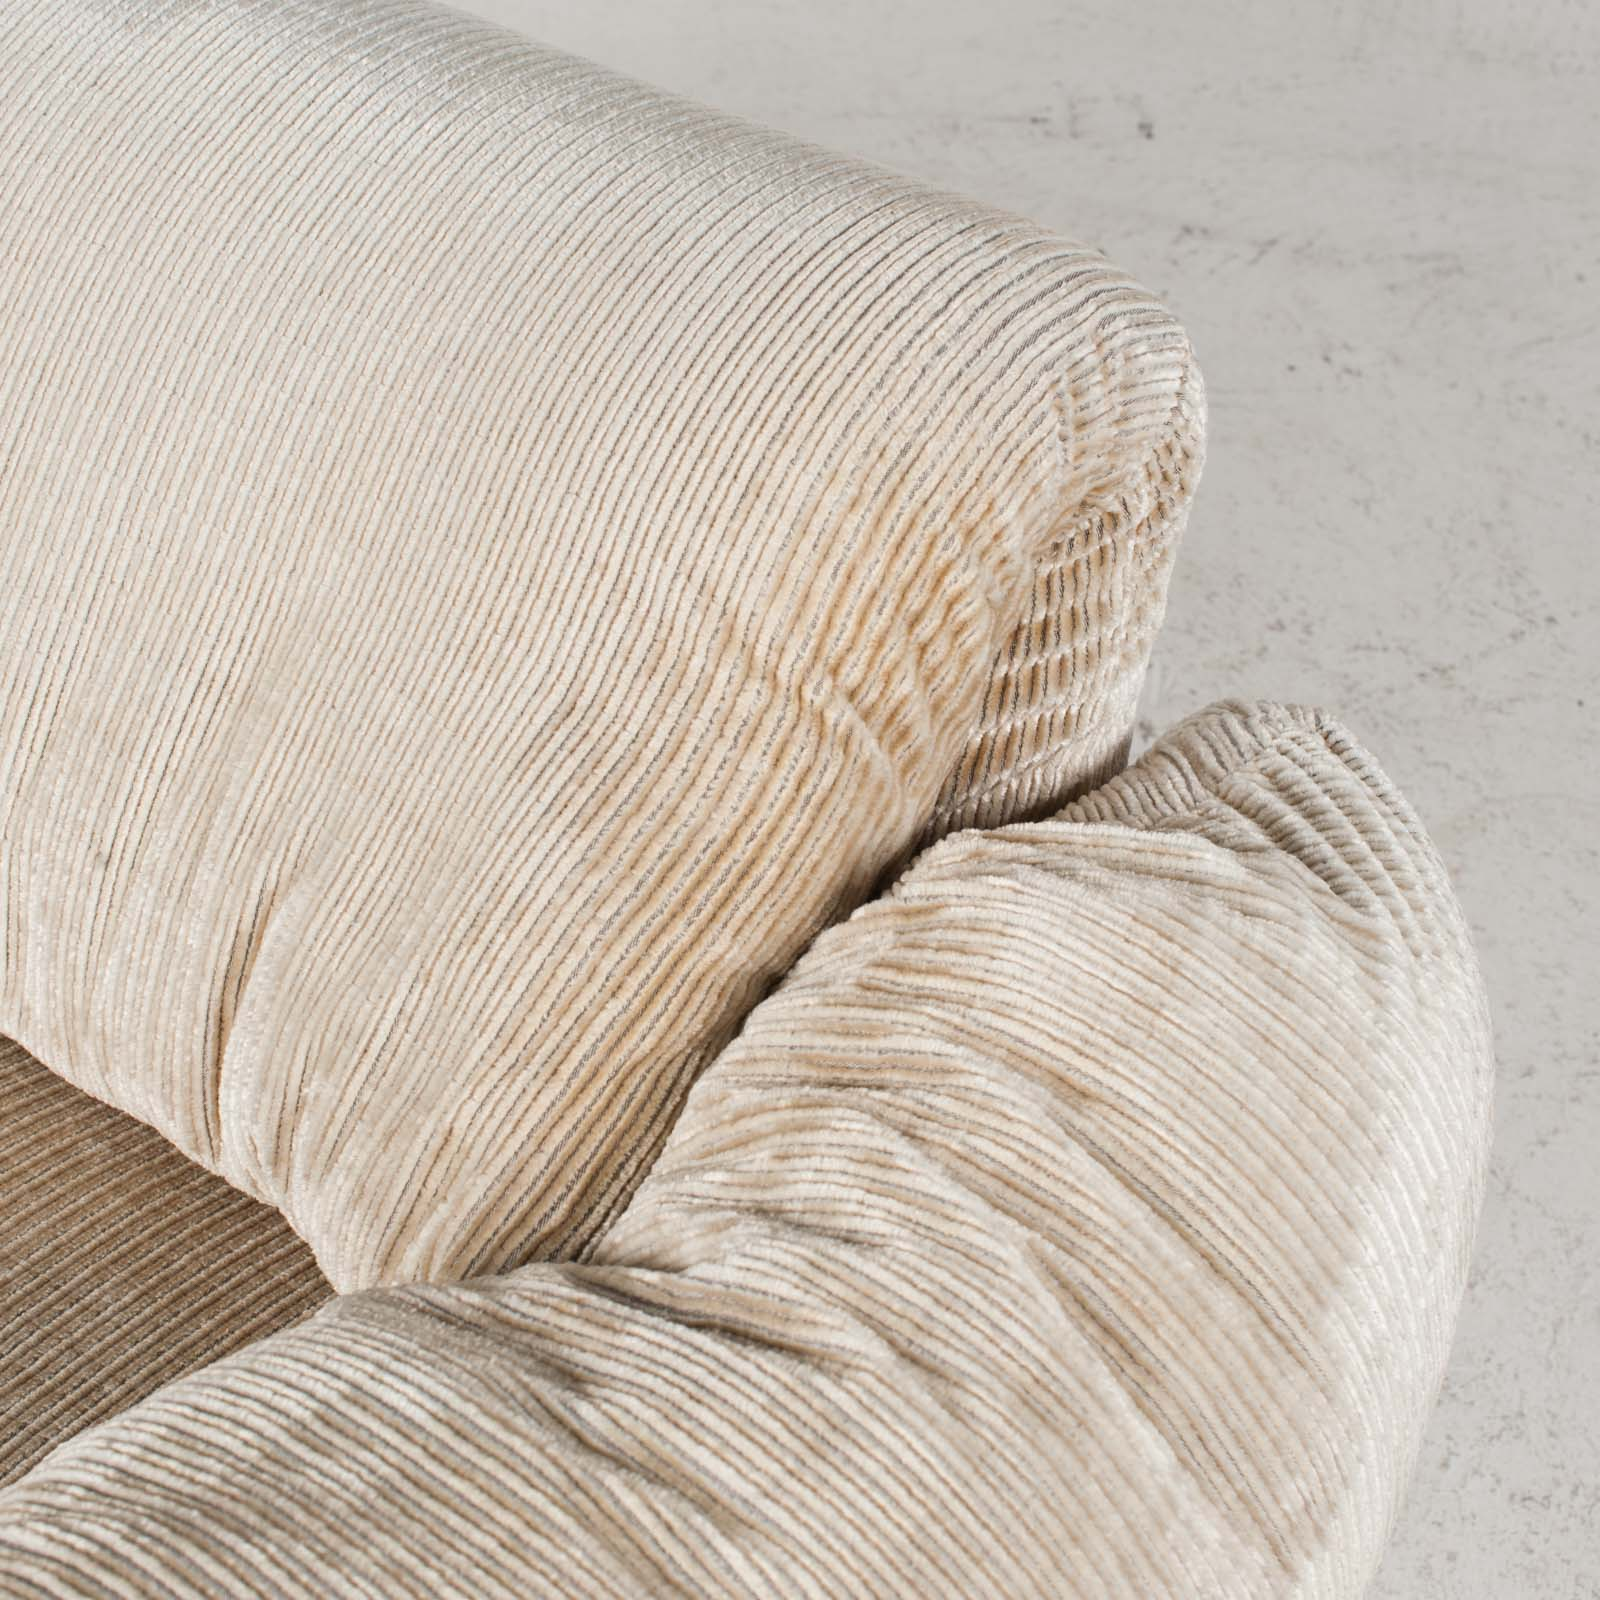 Maralunga Armchair By Vico Magistretti For Cassina In Original Upholstery 1970s Italy 04